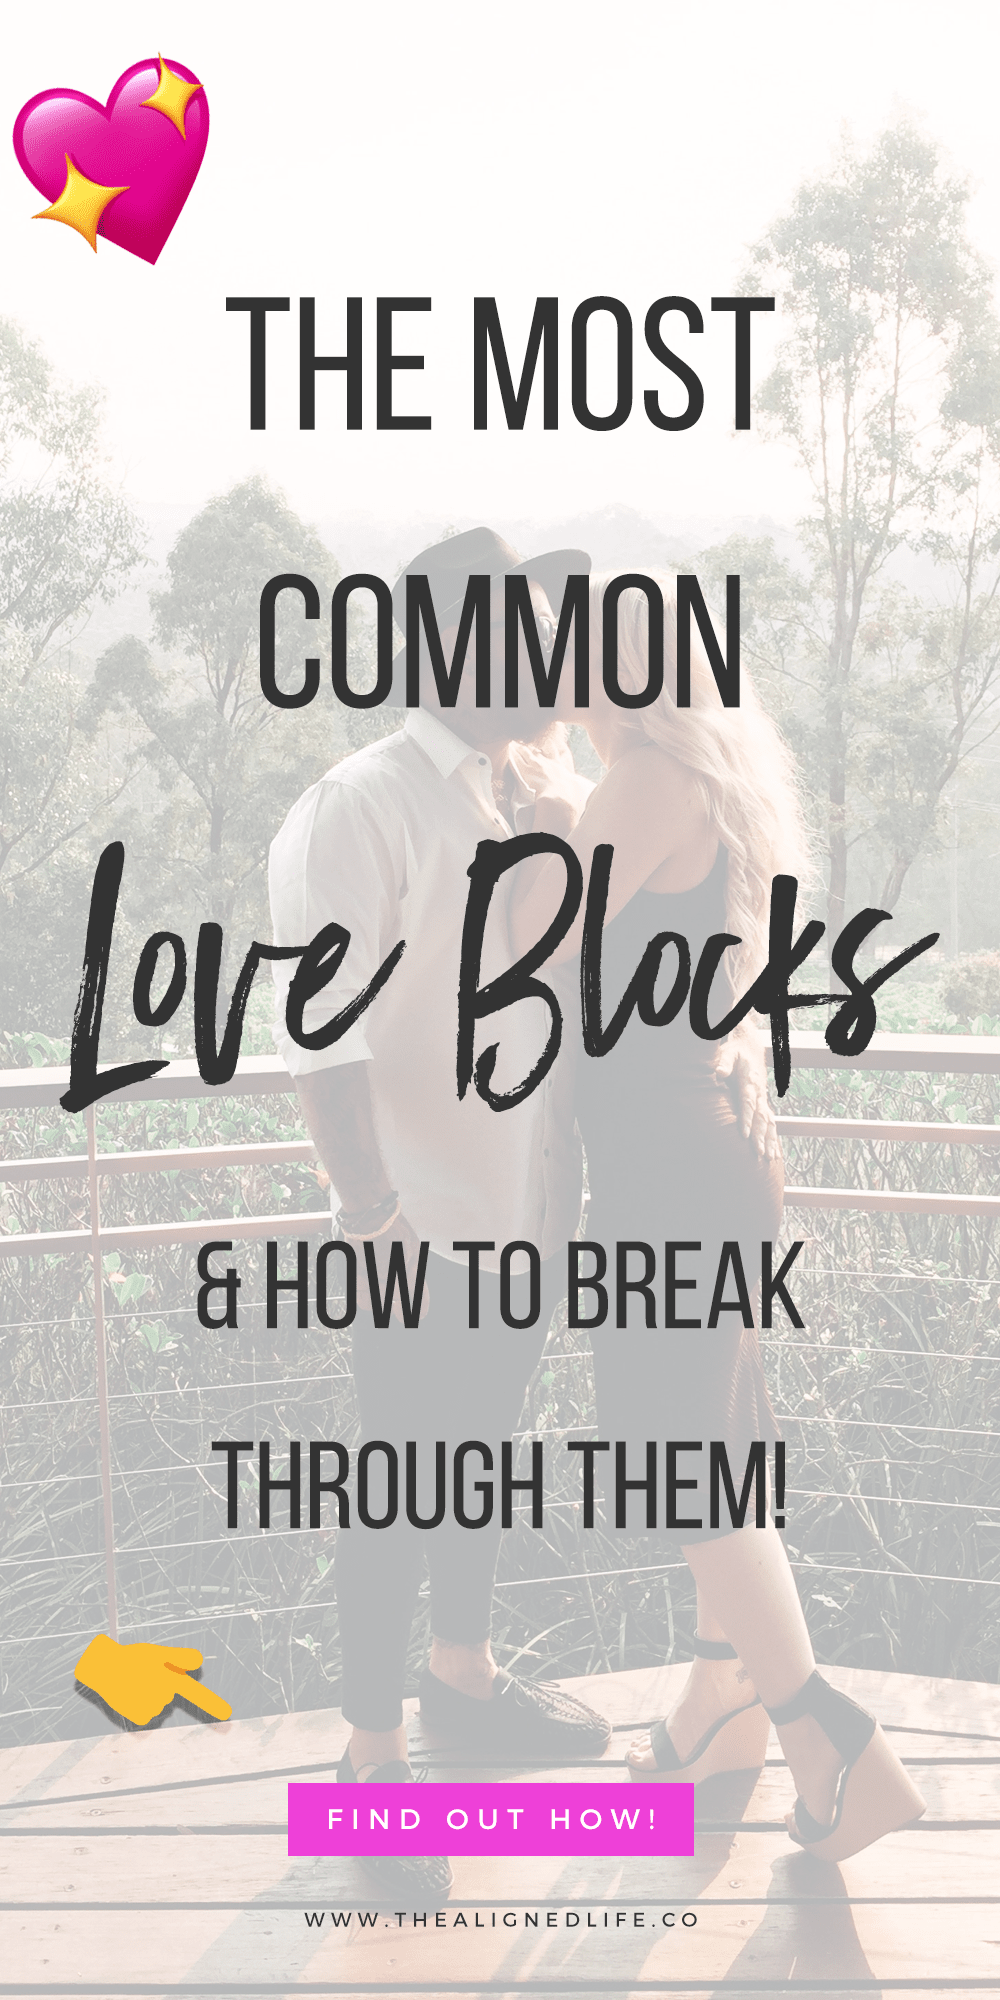 Top 5 Most Common Love Blocks (& How To Break Through Them!)